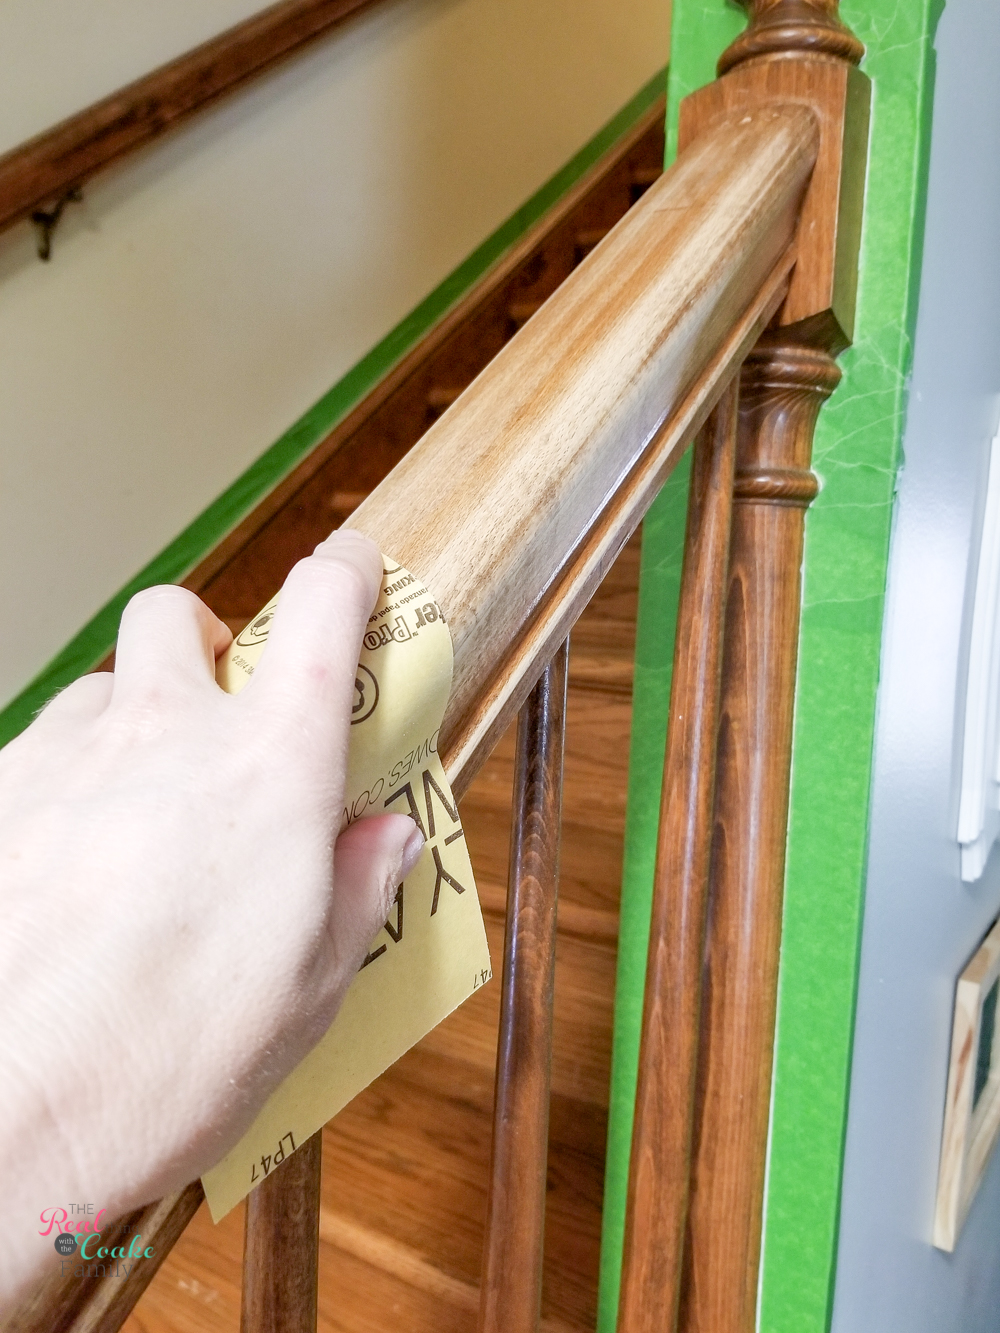 sanding railings to prep for painting stairs